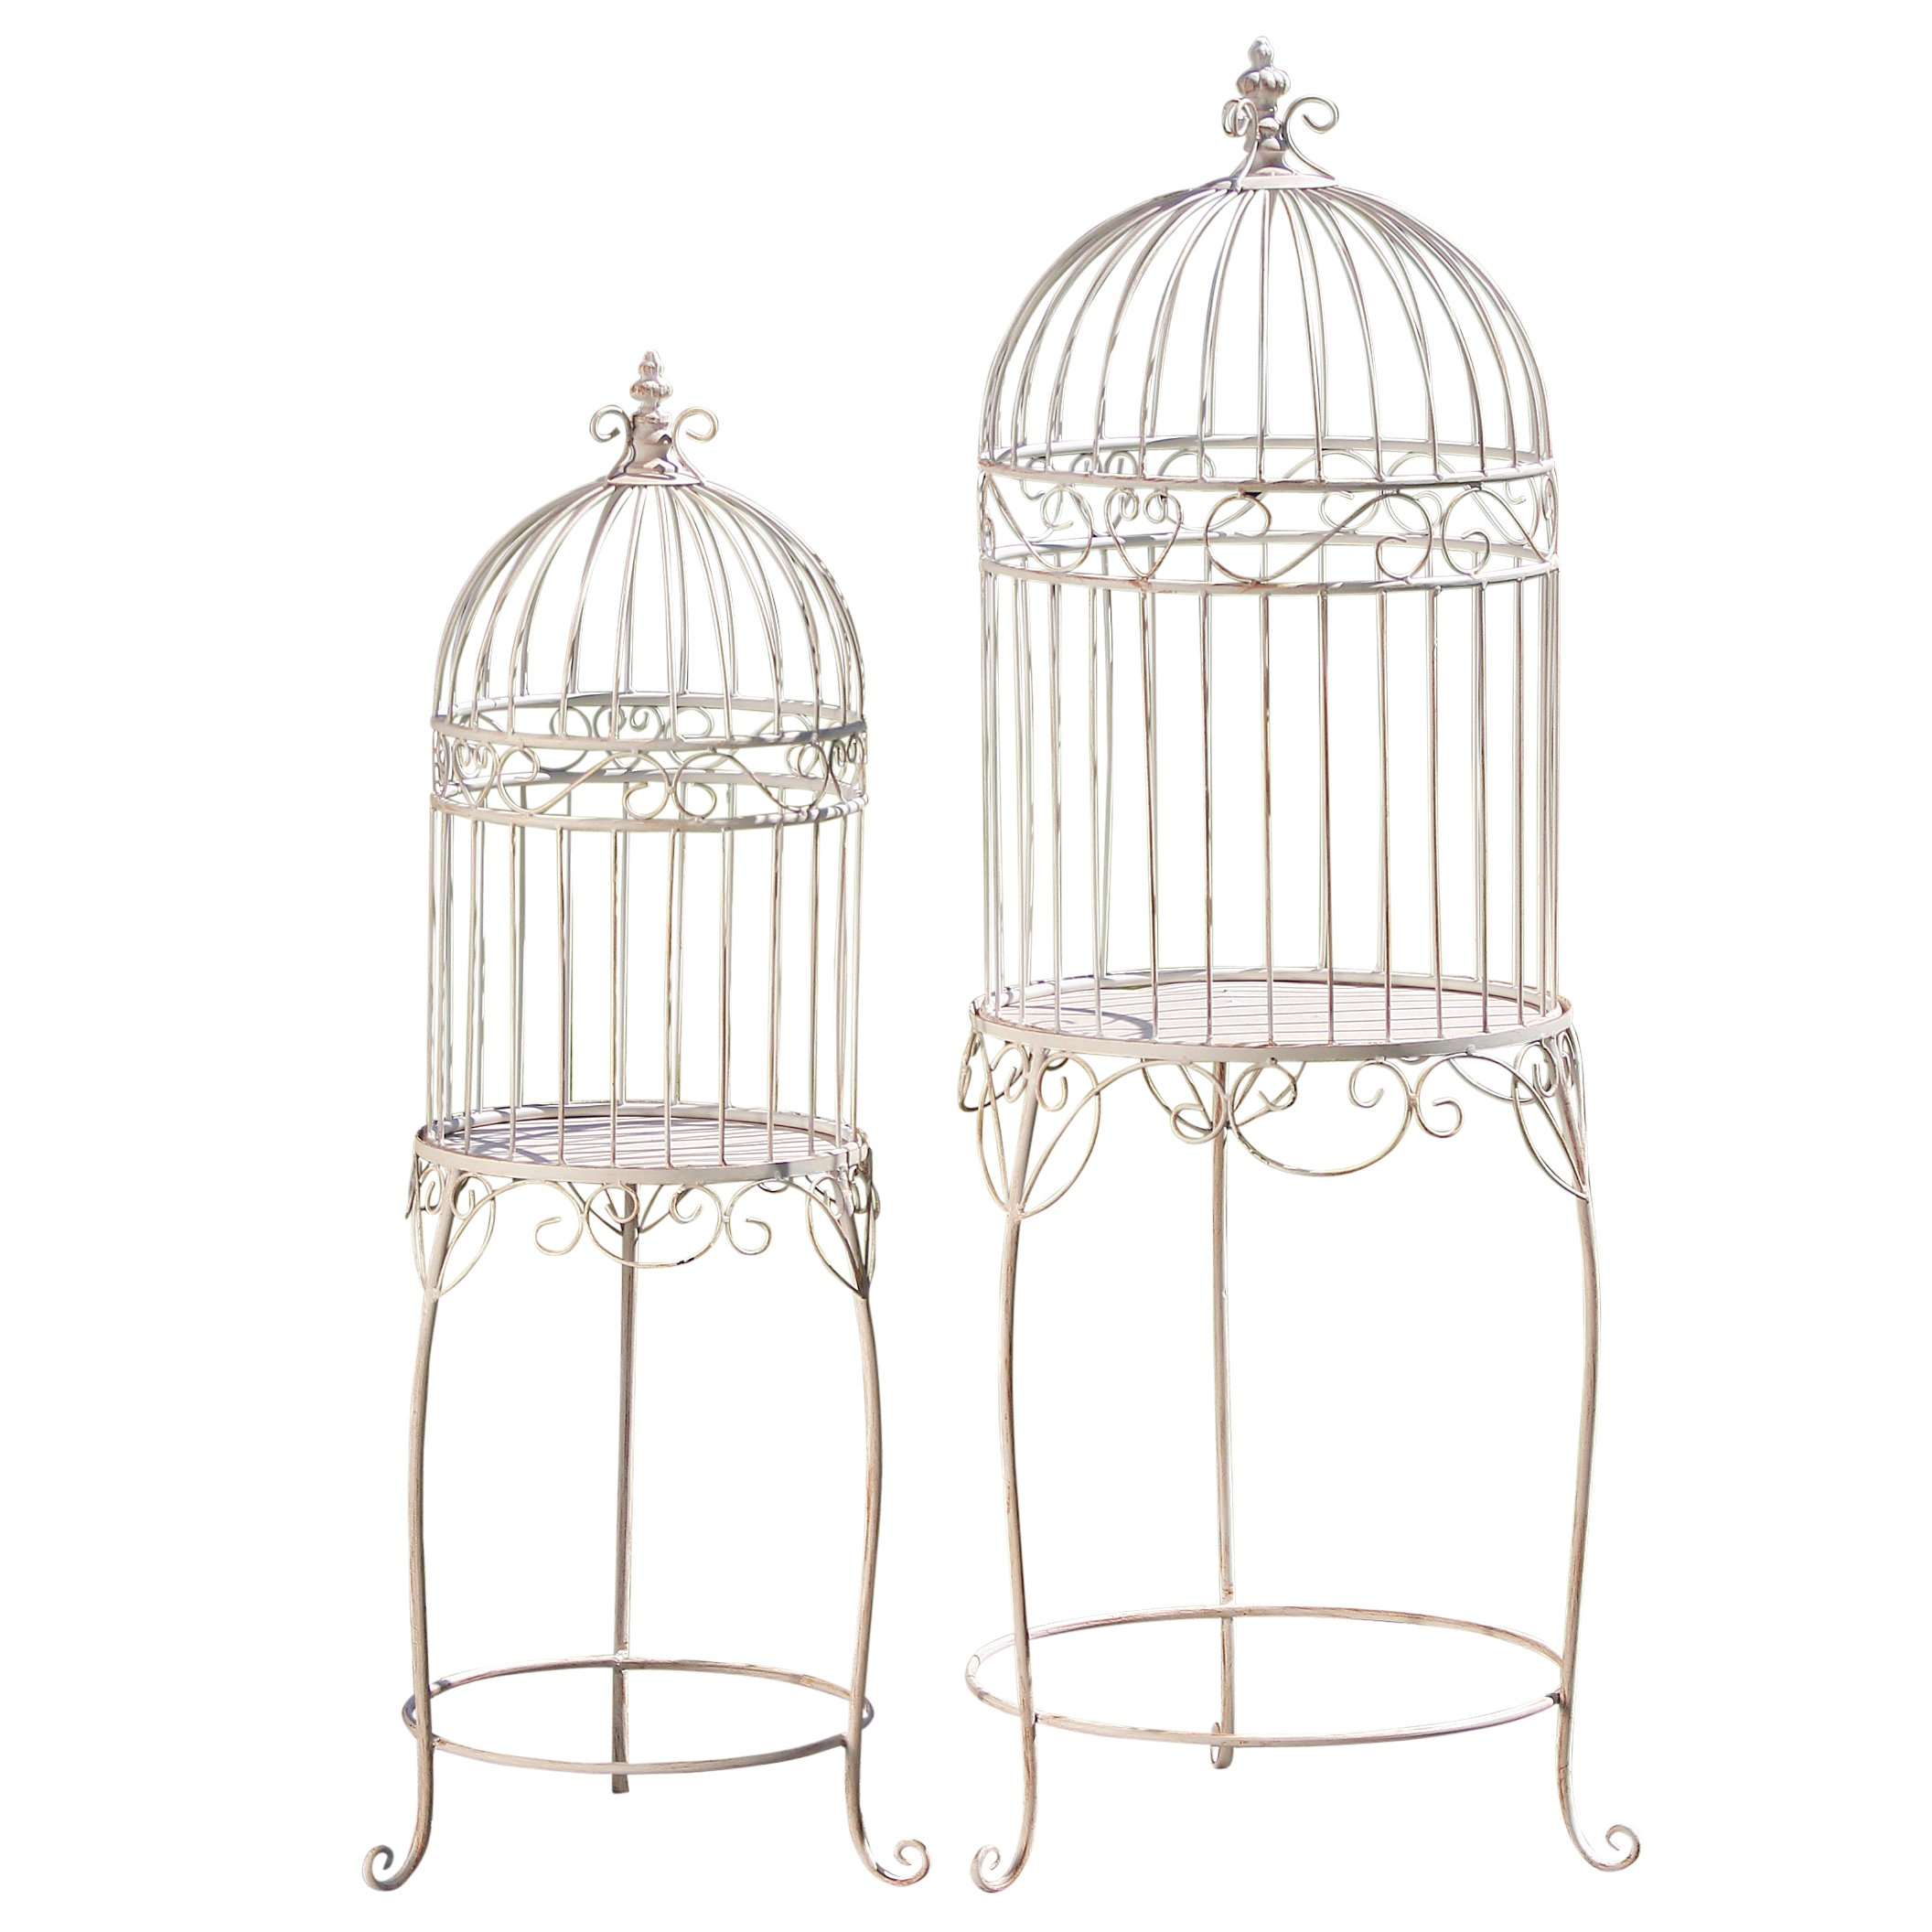 The Farmers Market Decorative Bird Cage Plant Stands, Set of 2, Pedestal Tables, Lift Off Tops, Distressed, Vintage Style, Iron, 17¾ D x 49¼ H Tall And 12½ D W x 40¼ H, By Whole House Worlds by Whole House Worlds